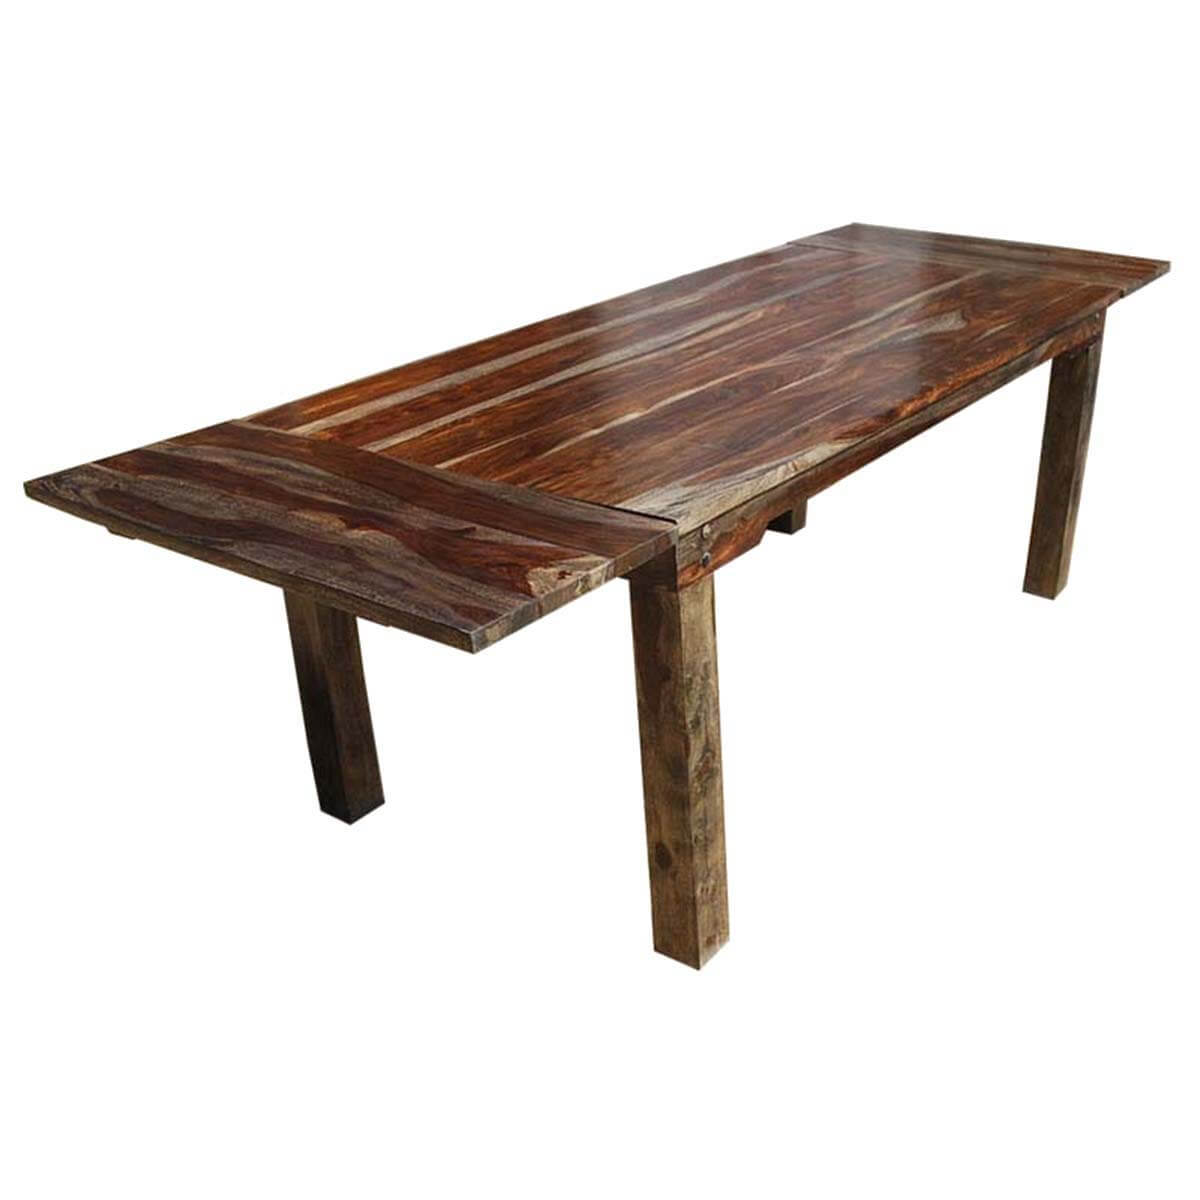 Rustic large cariboo dining table w extensions for On the dining table